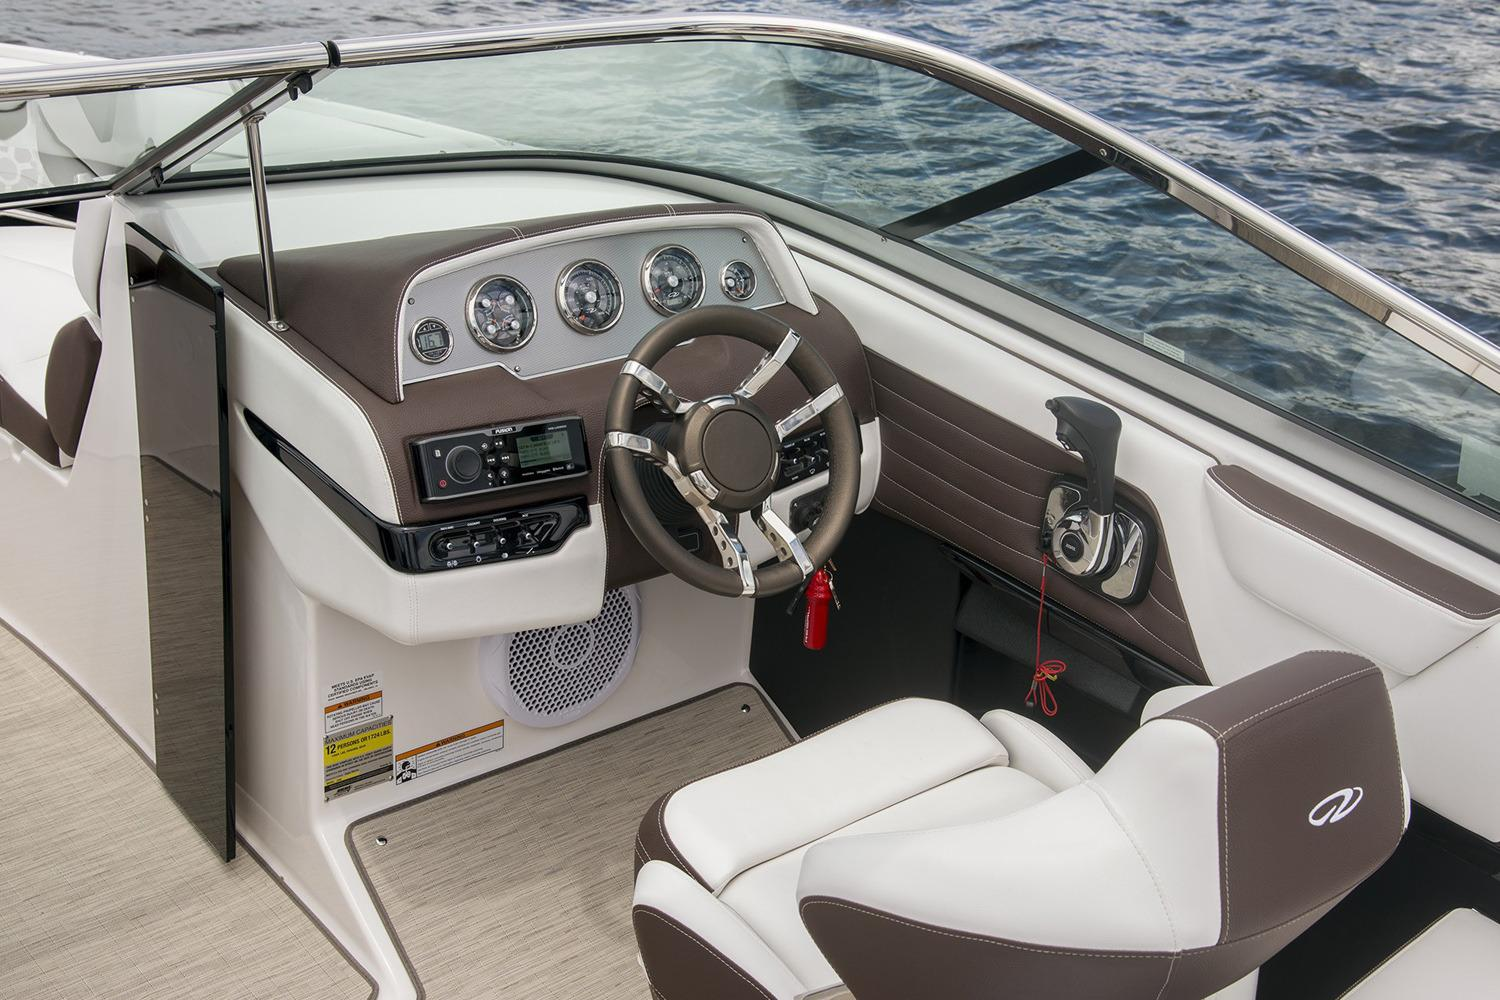 2019 Regal 2300 Bowrider in Bridgeport, New York - Photo 7